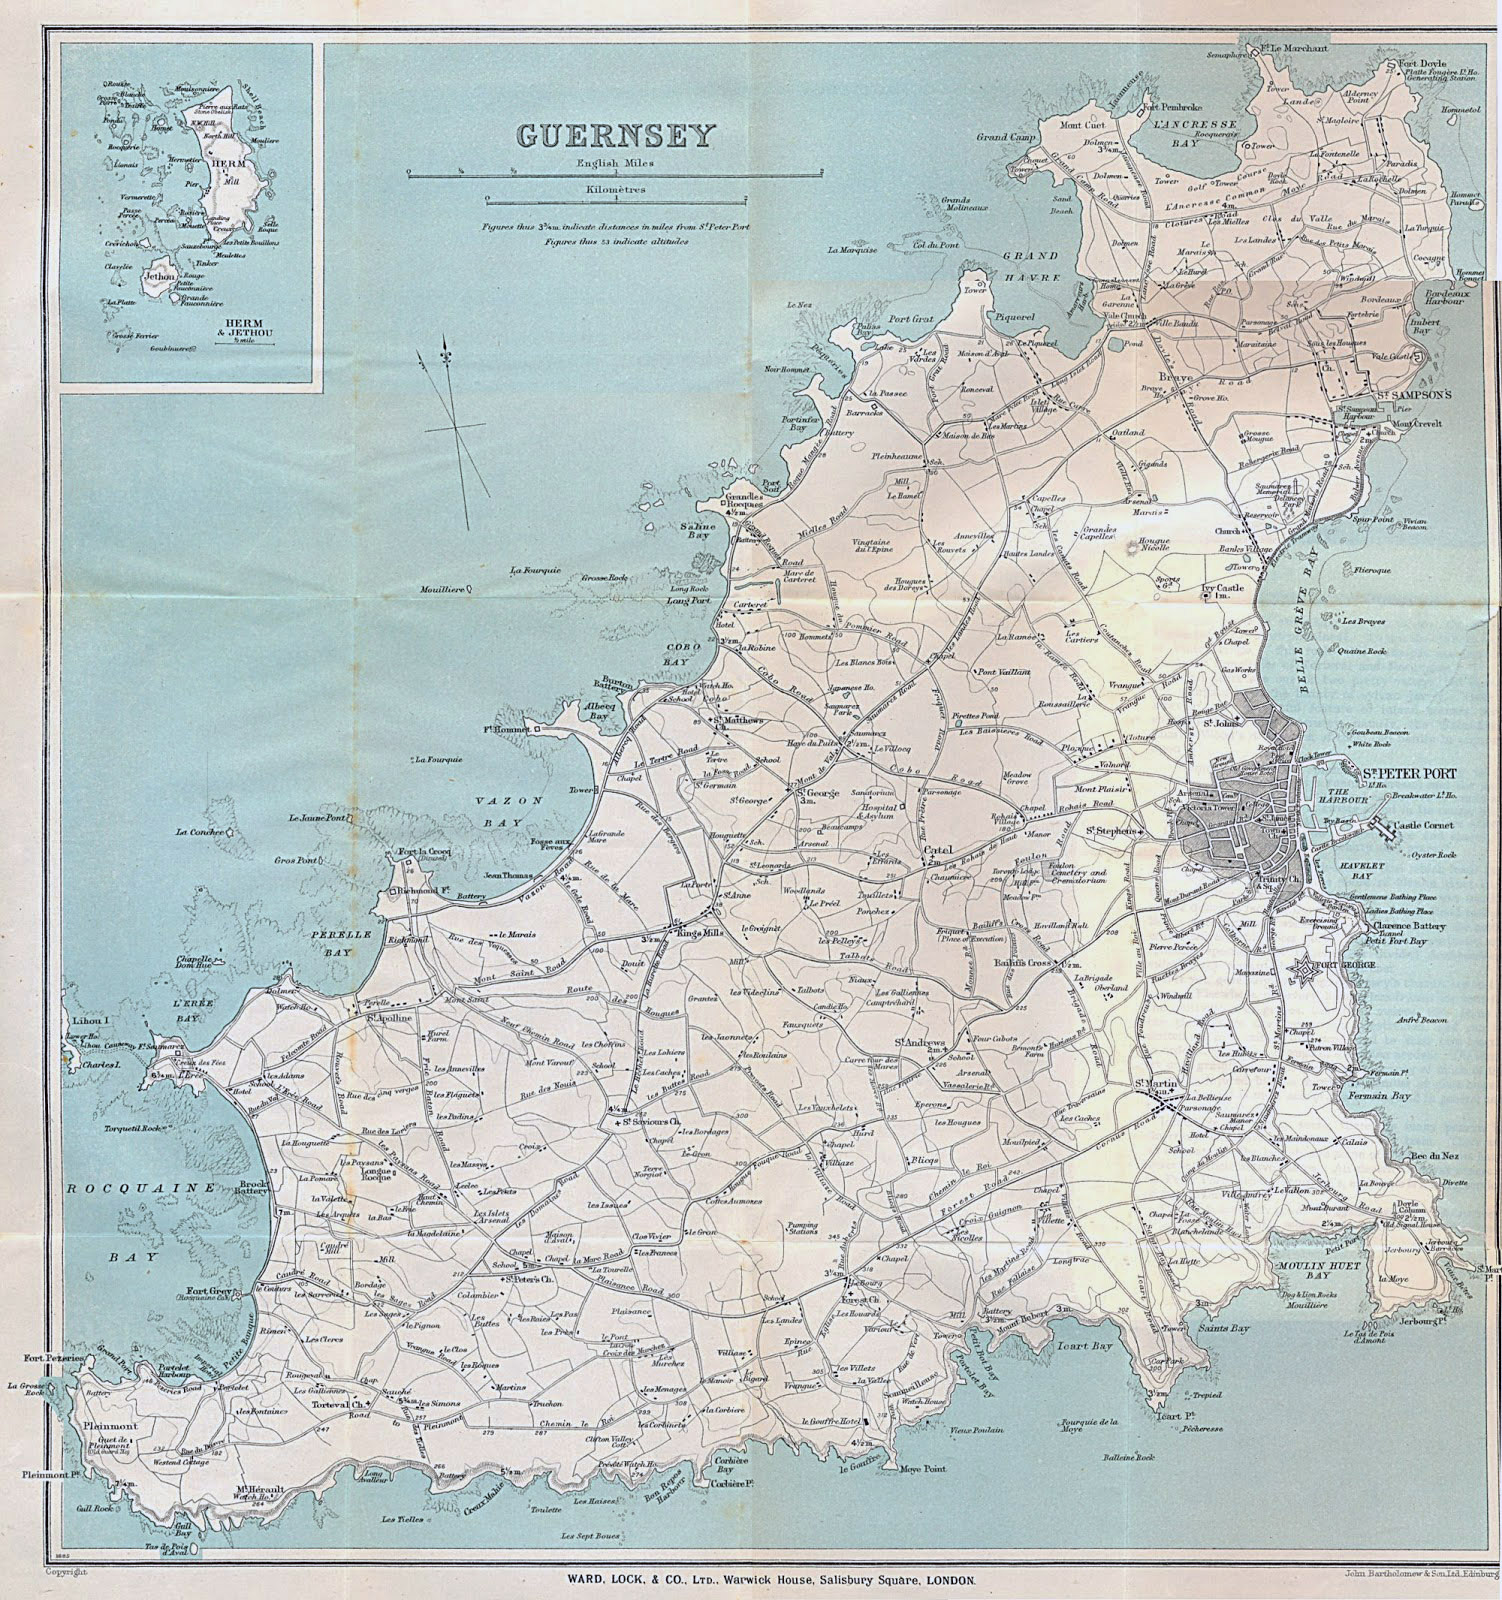 Large Detailed Old Map Of Guernsey With All Roads And Cities 1930